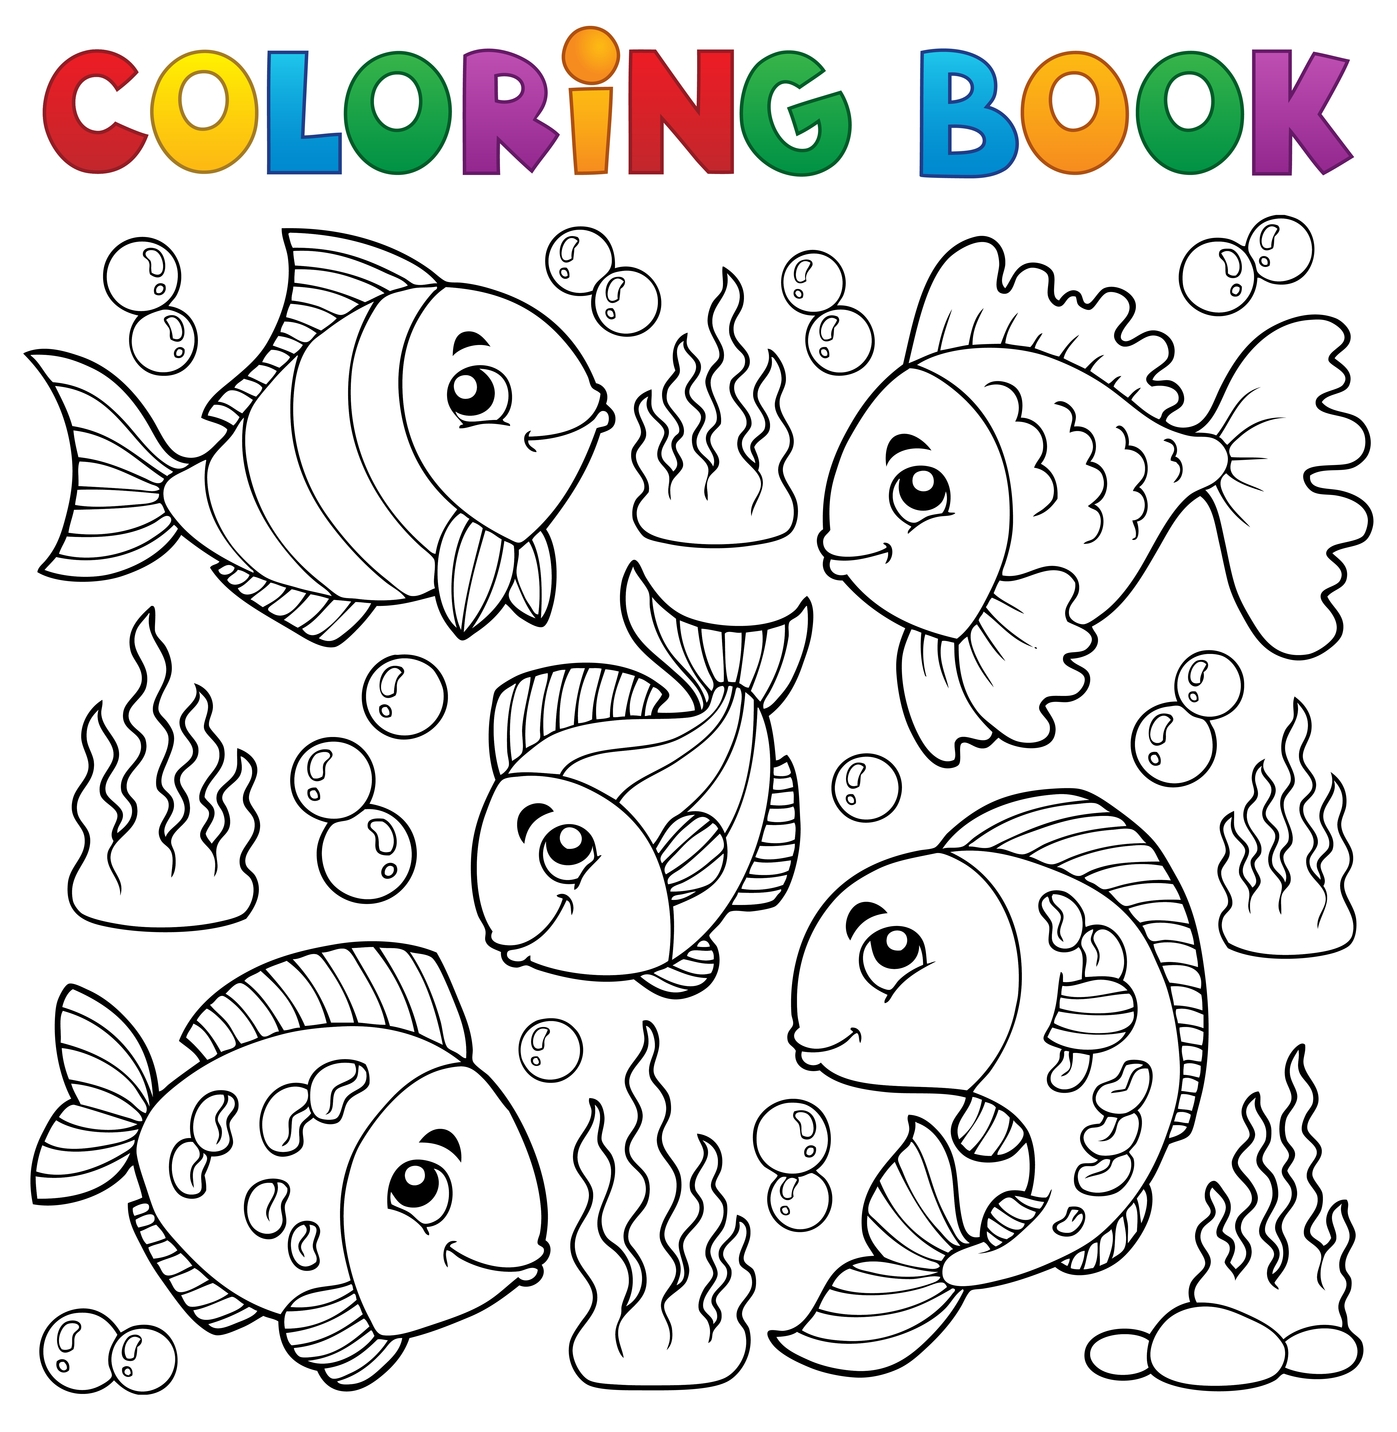 Coloring book various fish theme 1 for Immagini di pesci da colorare